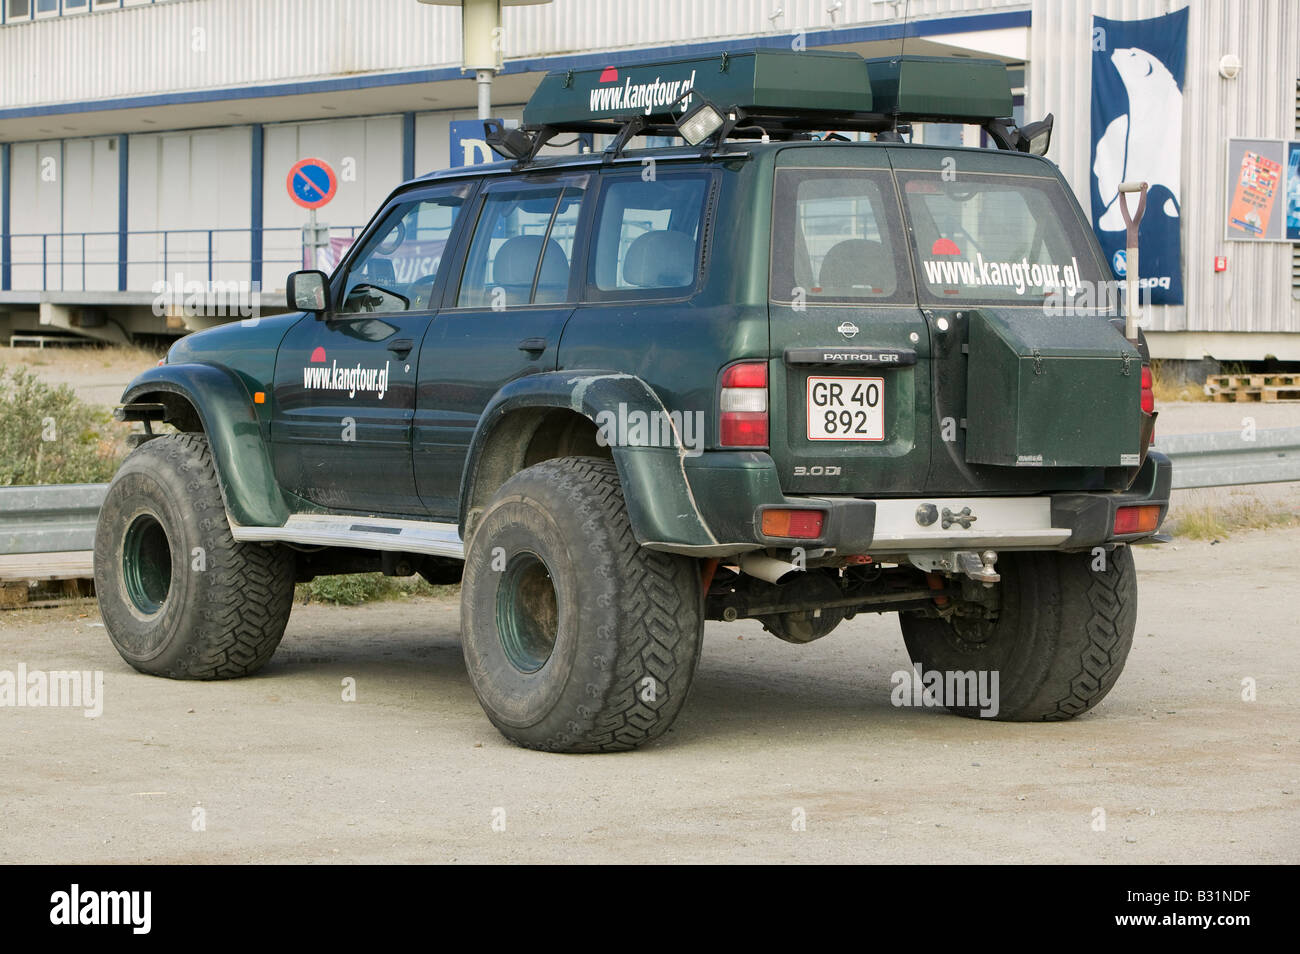 A Large Four Wheel Drive Vehicle At Kangerlussuaq In Greenland Stock Photo Alamy